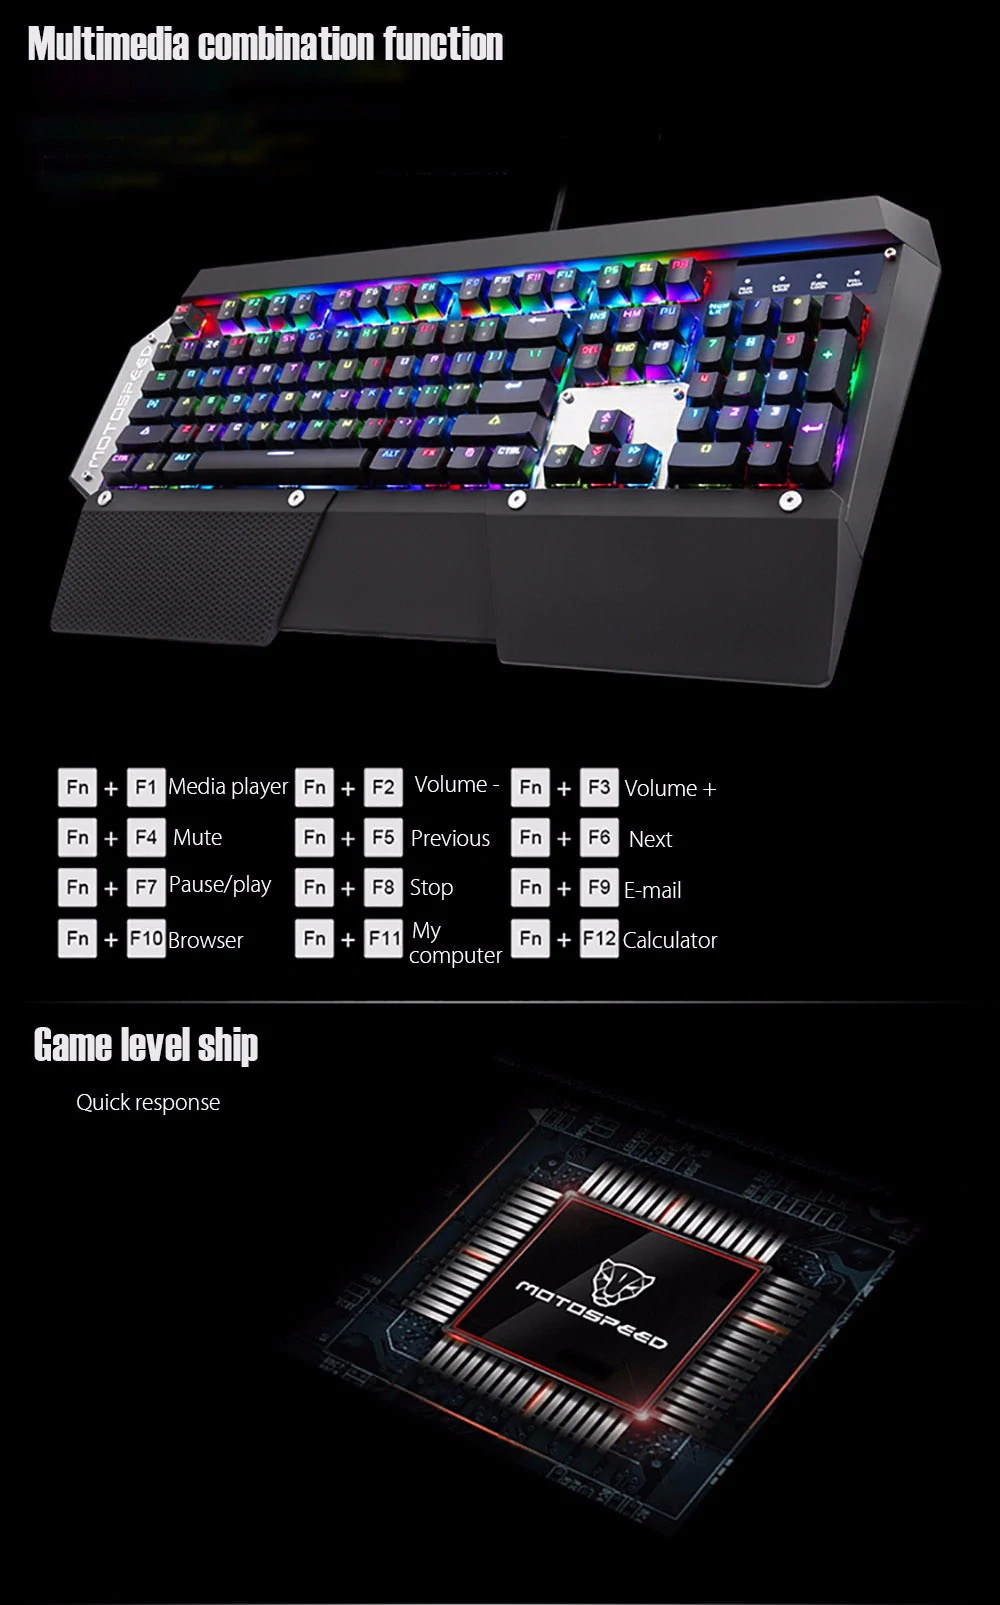 motospeed ck88 keyboard